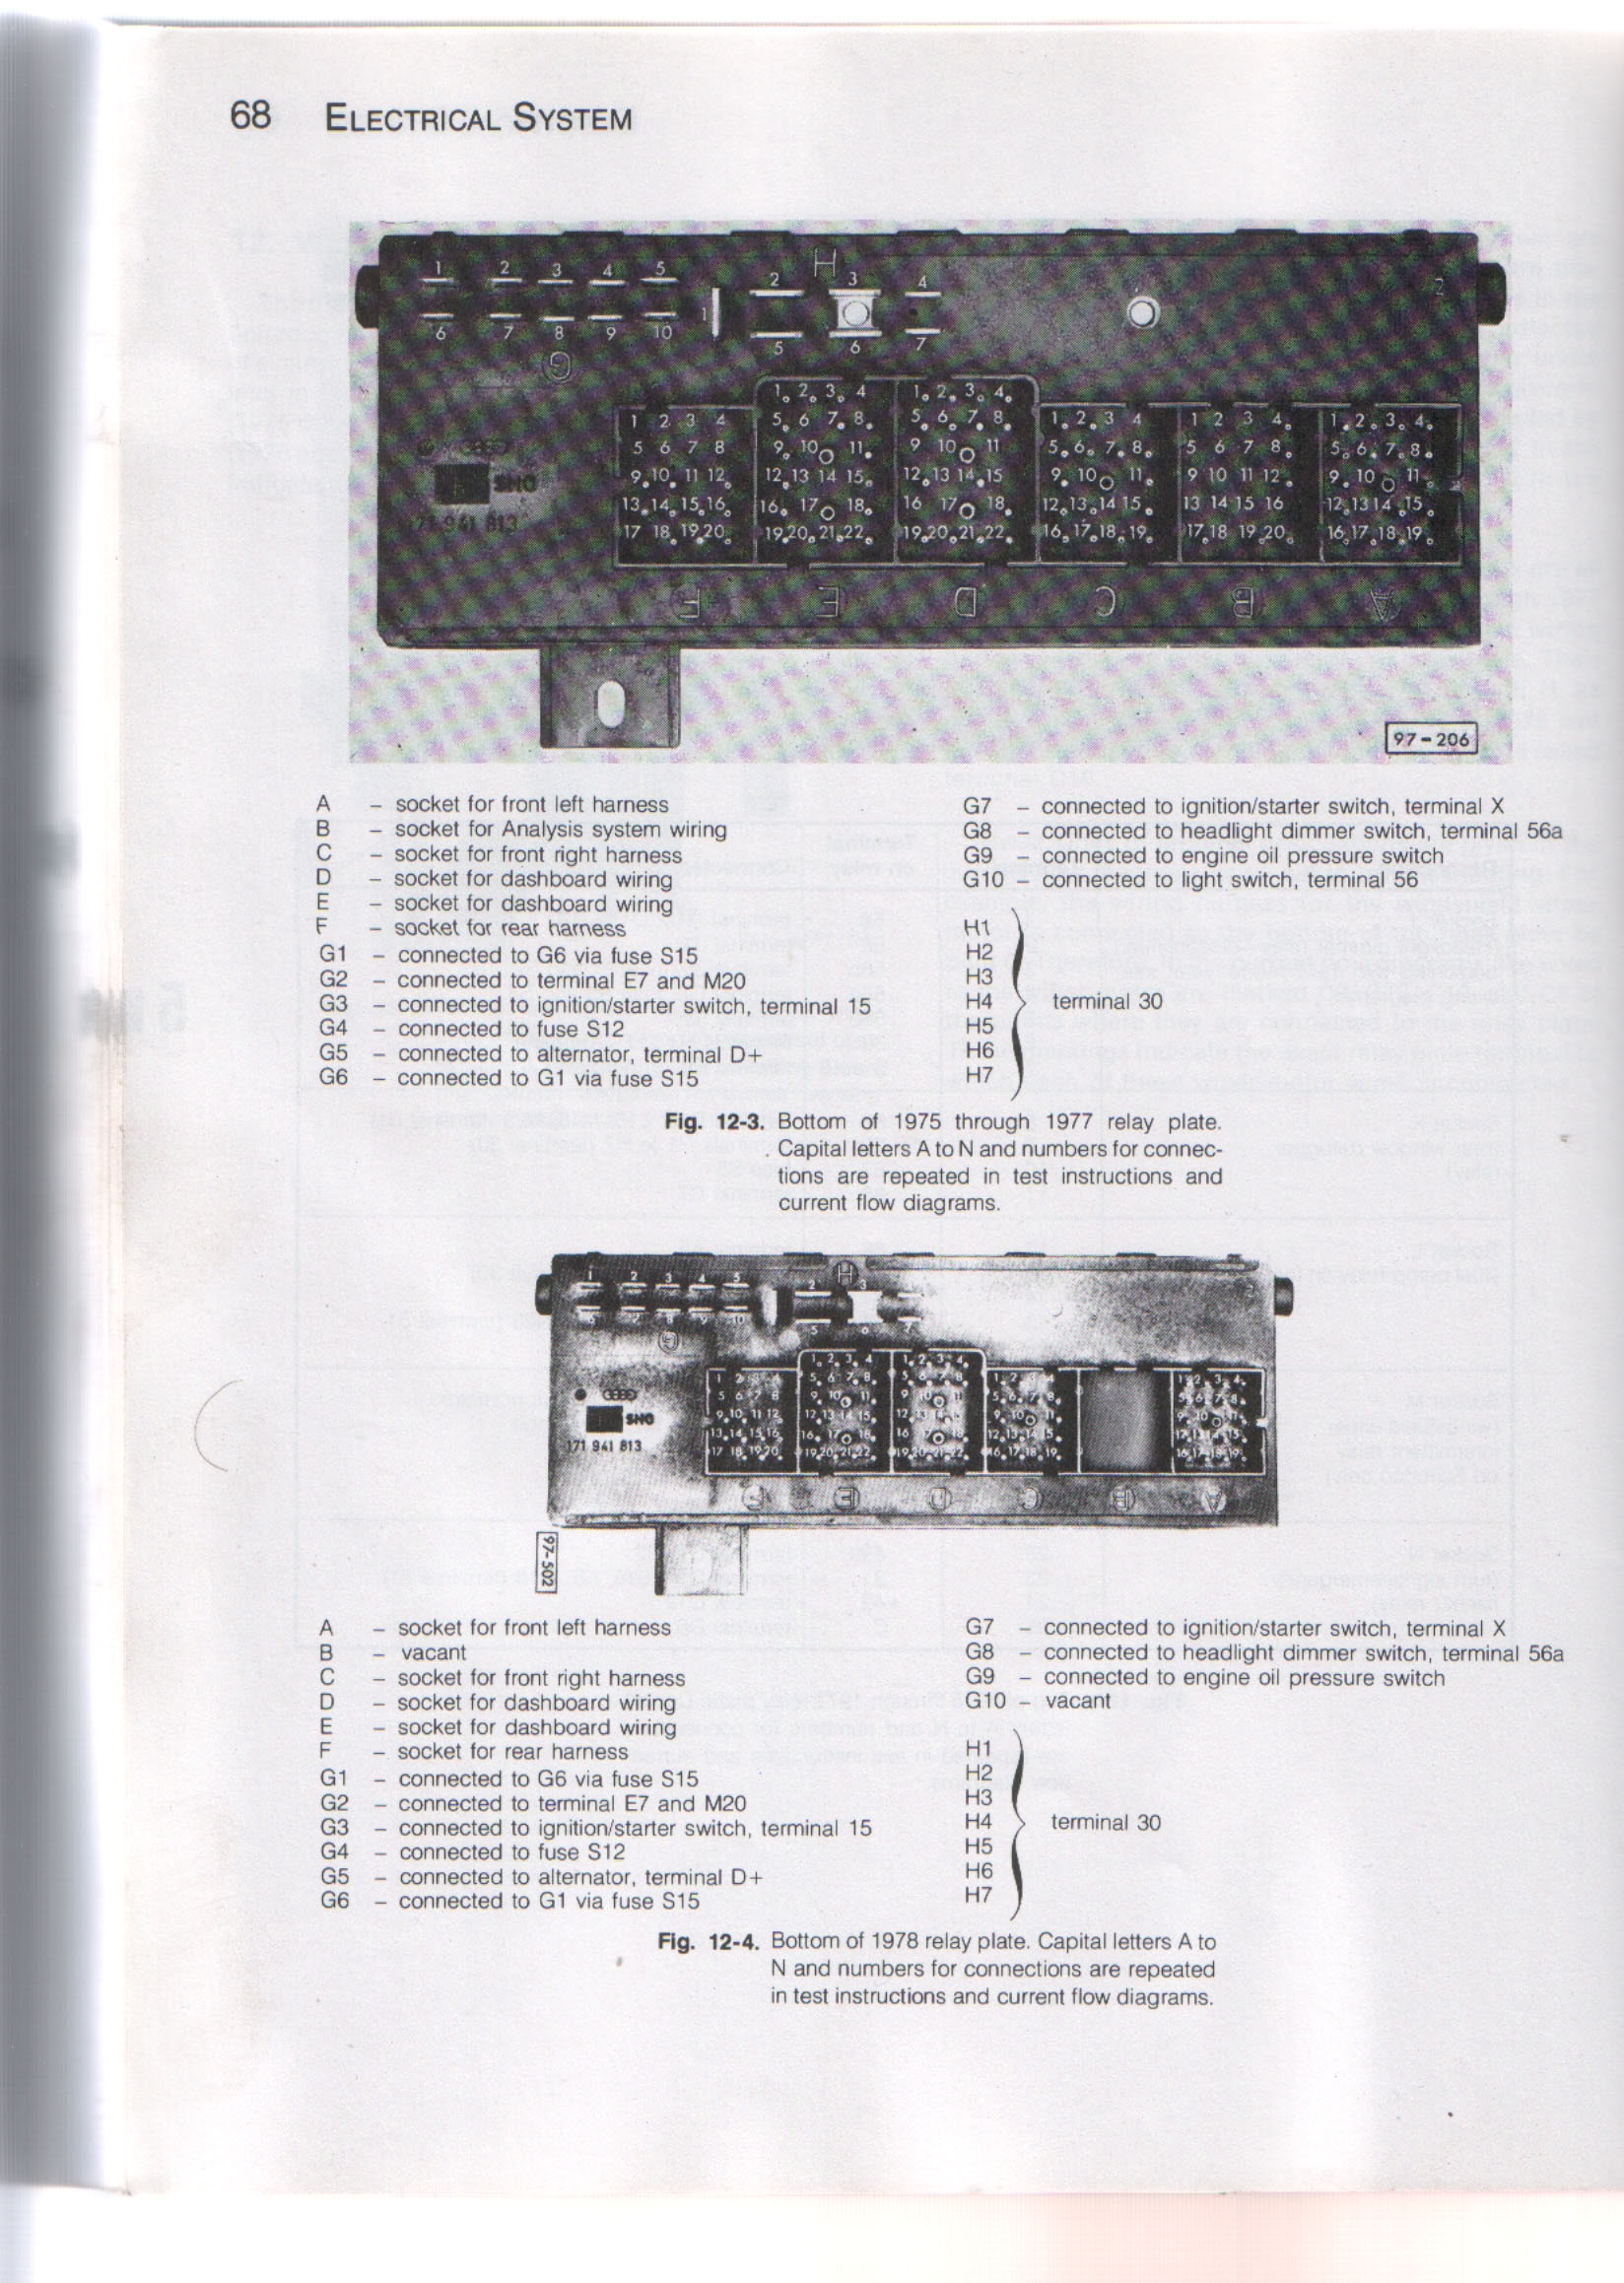 2009 vw rabbit fuse box diagram gAYbQTL 2007 vw rabbit fuse box diagram image details 1982 vw rabbit fuse box at cos-gaming.co